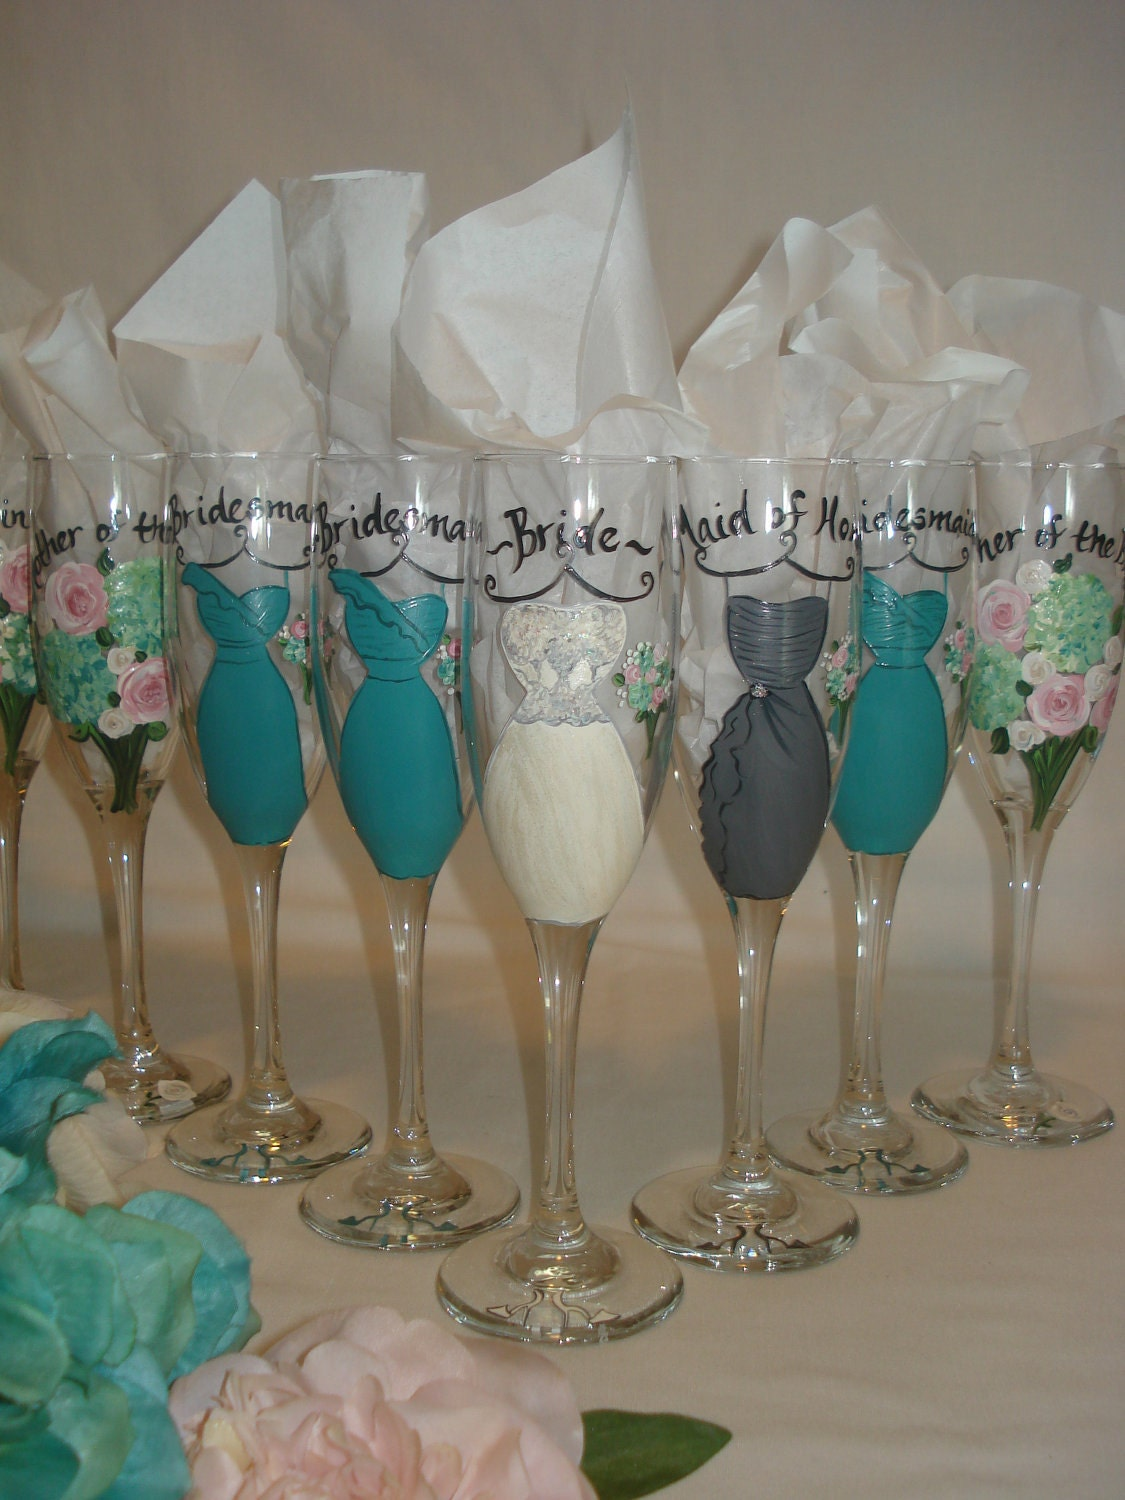 How Many Wine Glasses For Wedding Gift : Hand Painted Personalized Bridal Party Champagne Glasses